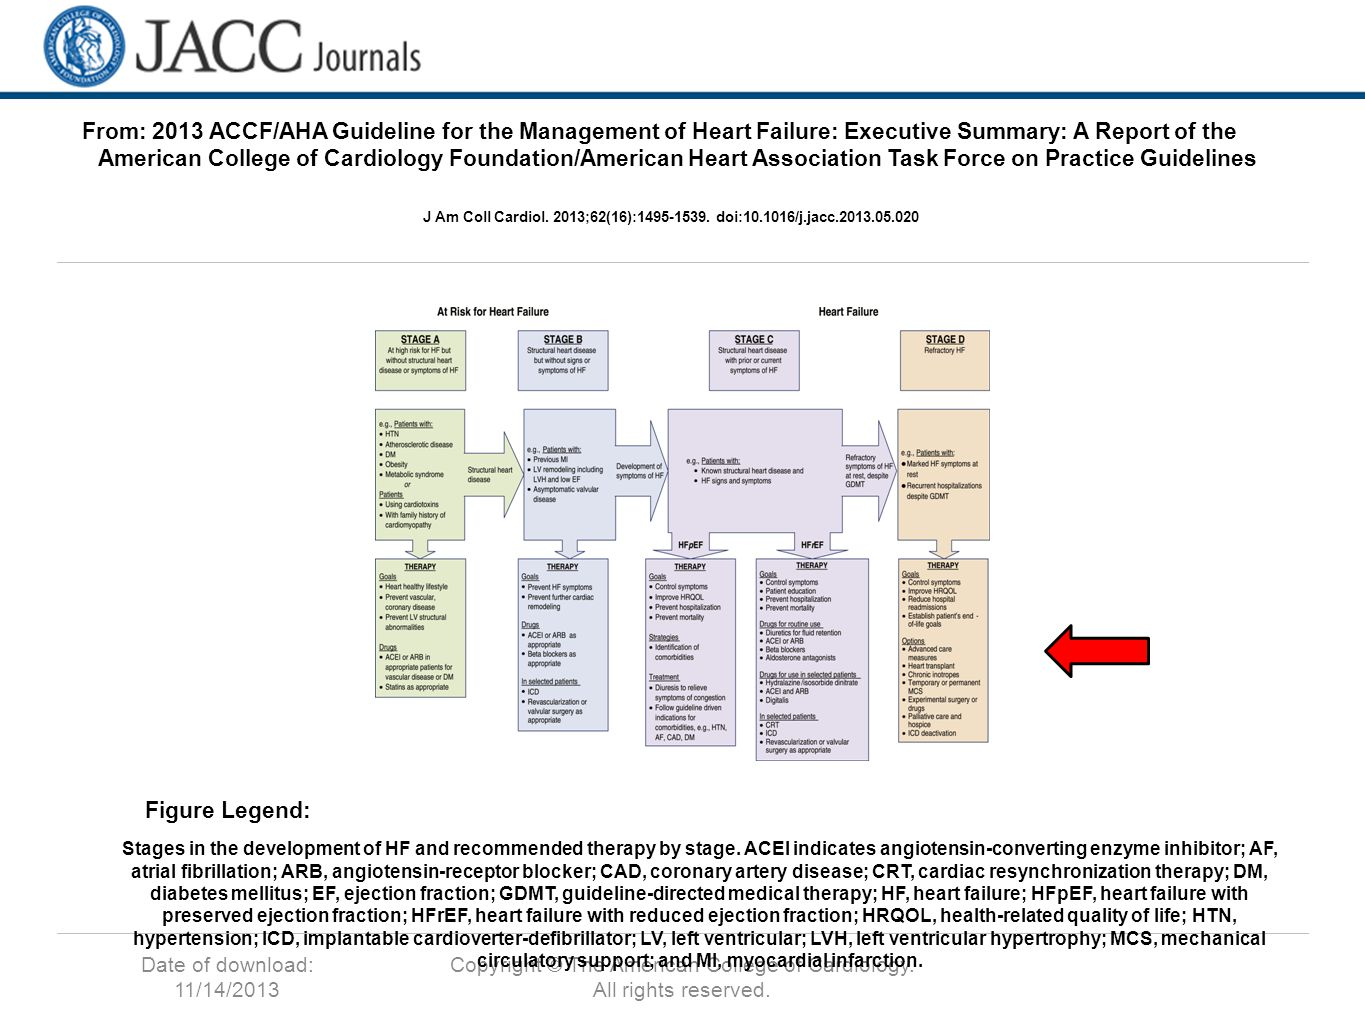 Date of download: 11/14/2013 Copyright © The American College of Cardiology.